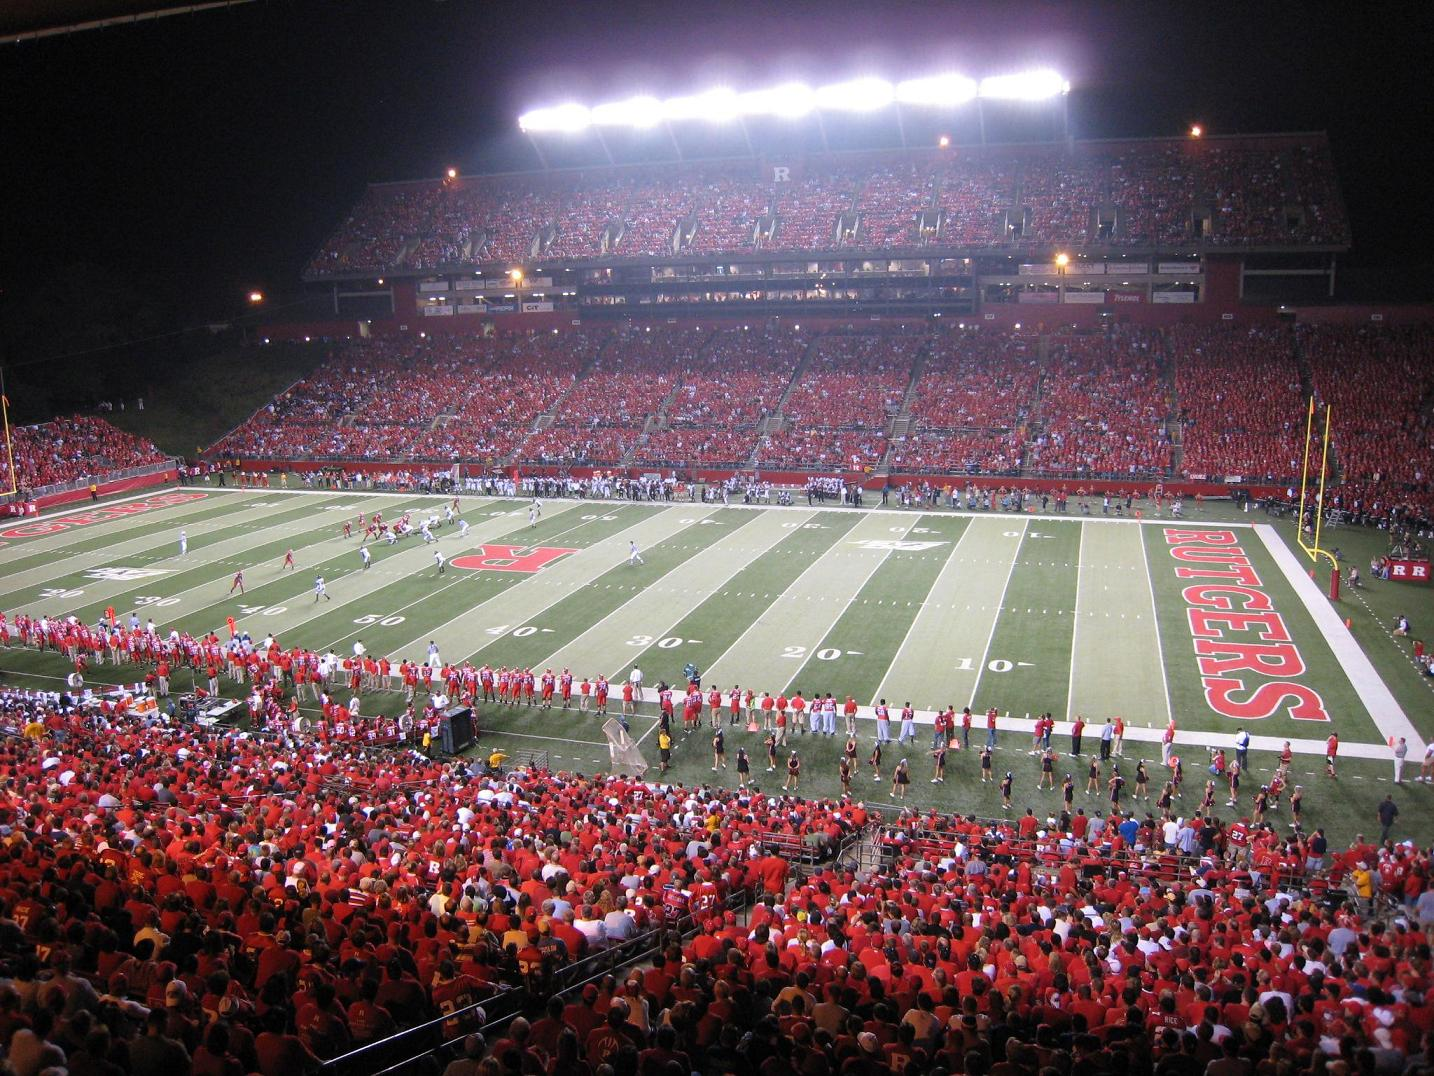 File:RUTGERS Stadium.jpg - Wikipedia, the free encyclopedia